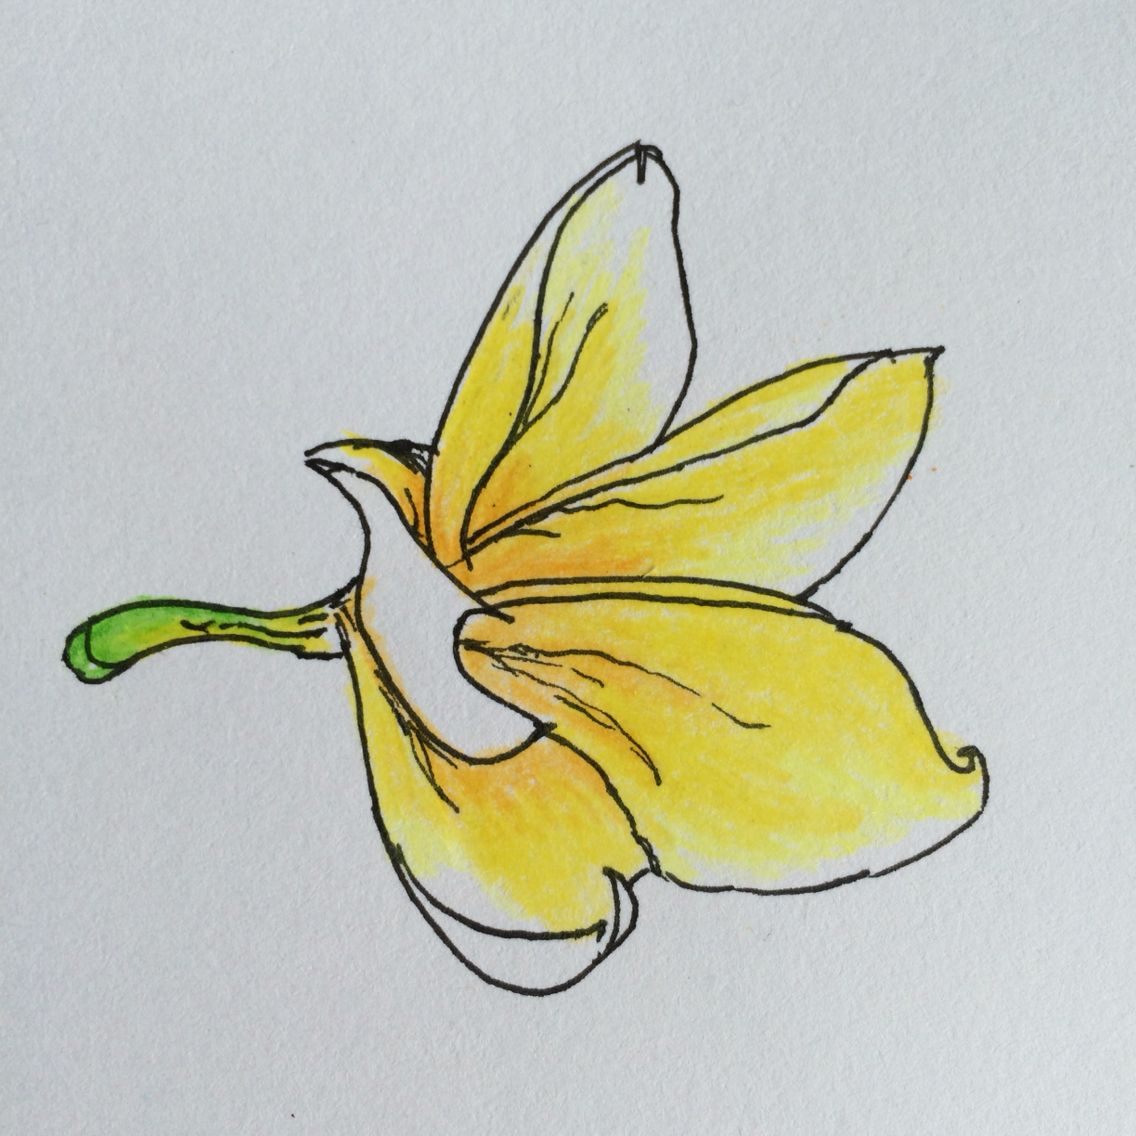 Kamboja Flower In Color Draw By Me Media Drawing Pen And Pencil Color